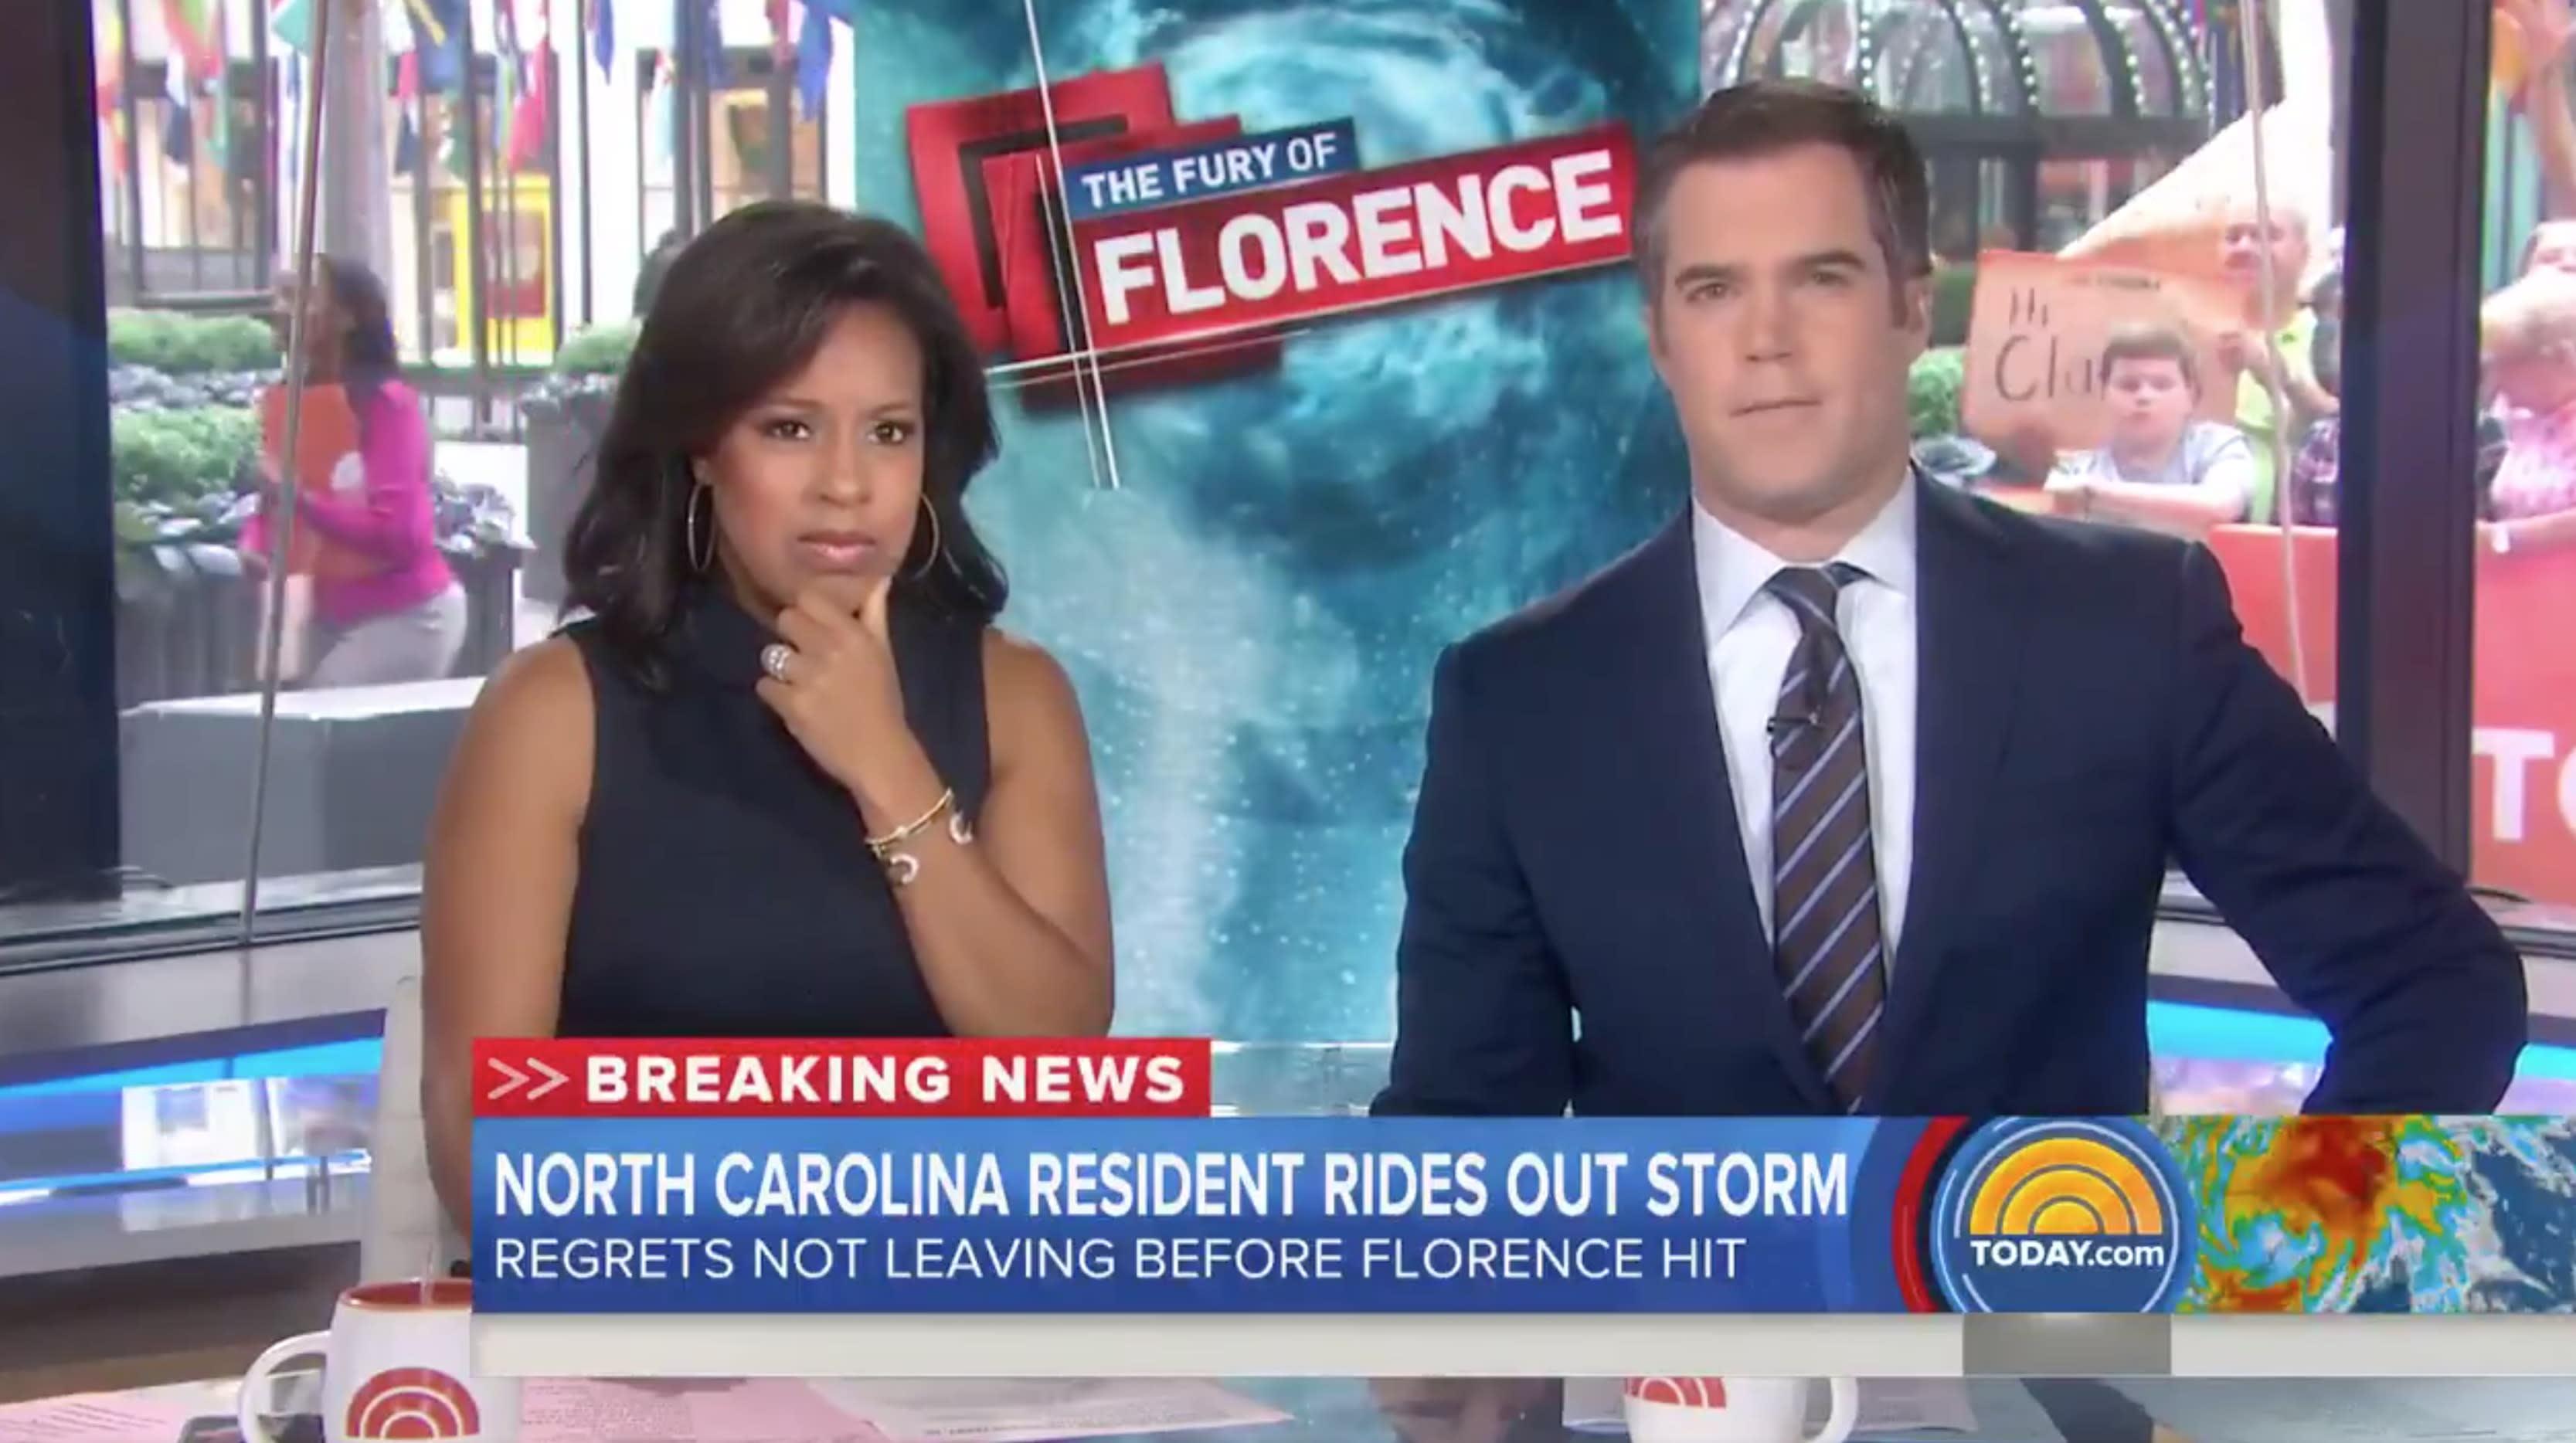 'I Will Never Ever Ever Stay' Again, Woman Stranded By Florence Tells 'Today'